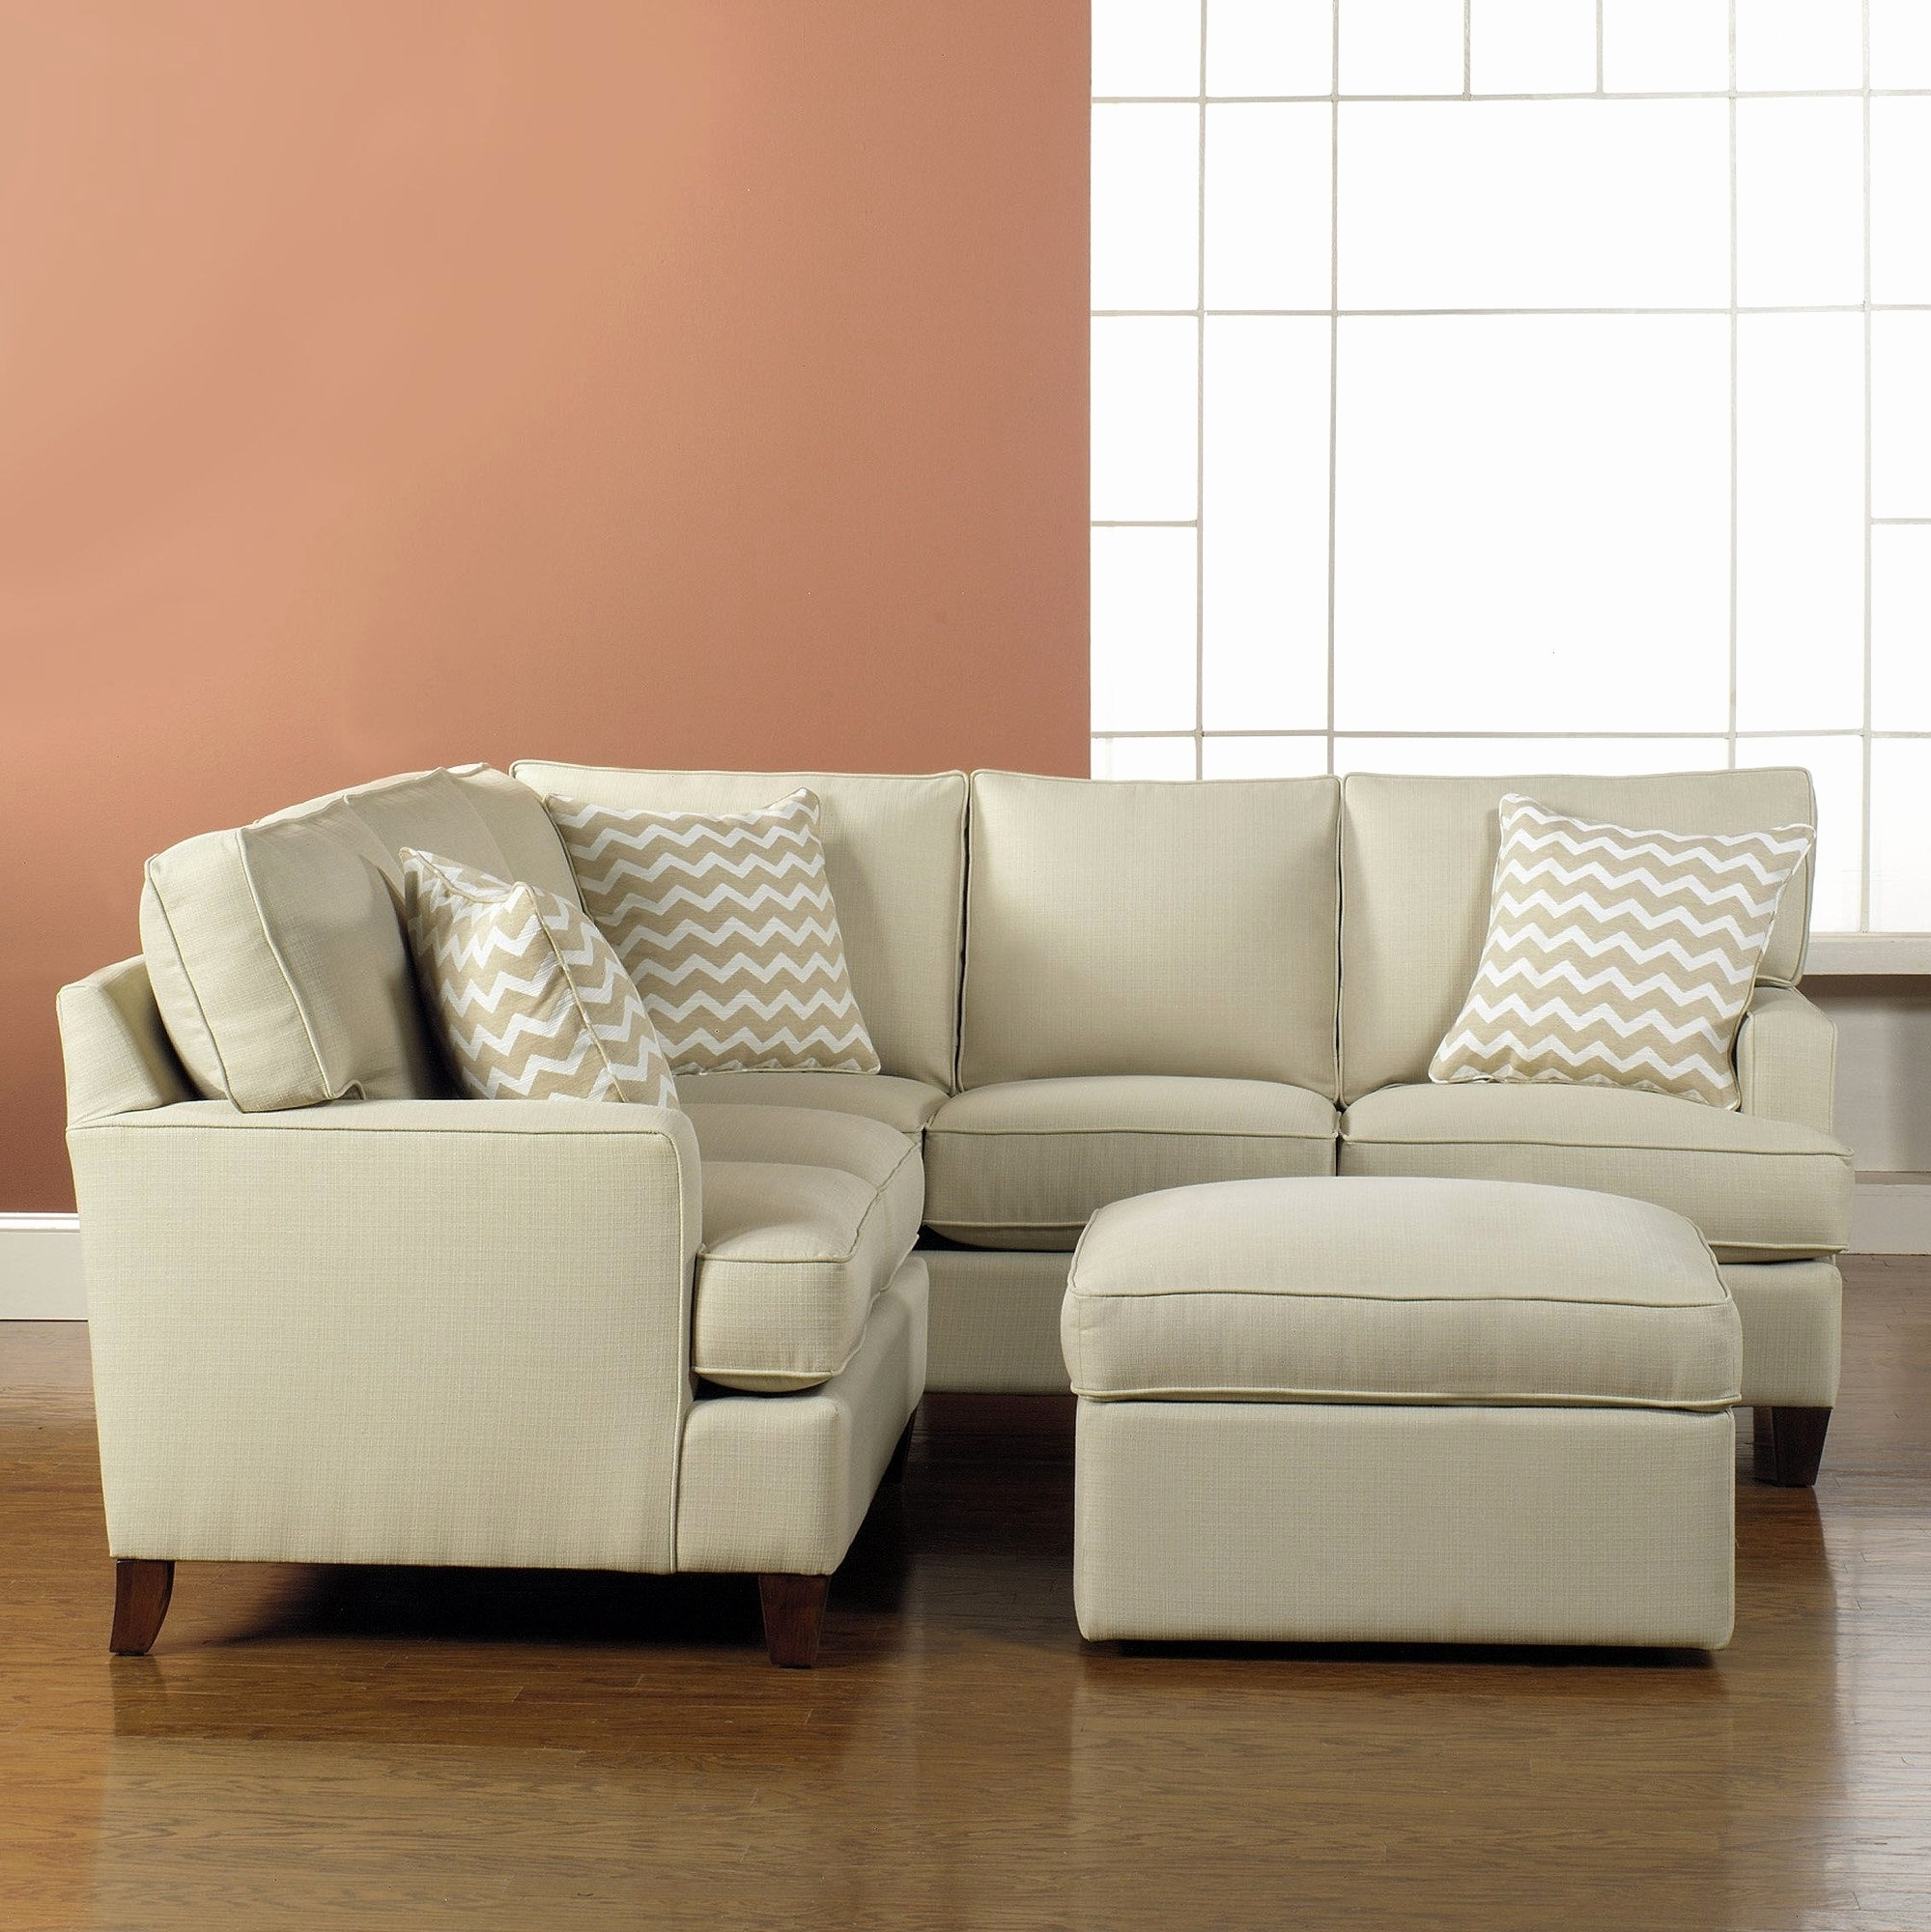 Small Space Sectional Sofa Elegant Sectional Sofa Design Awesome Within Well Known Tiny Sofas (View 3 of 20)